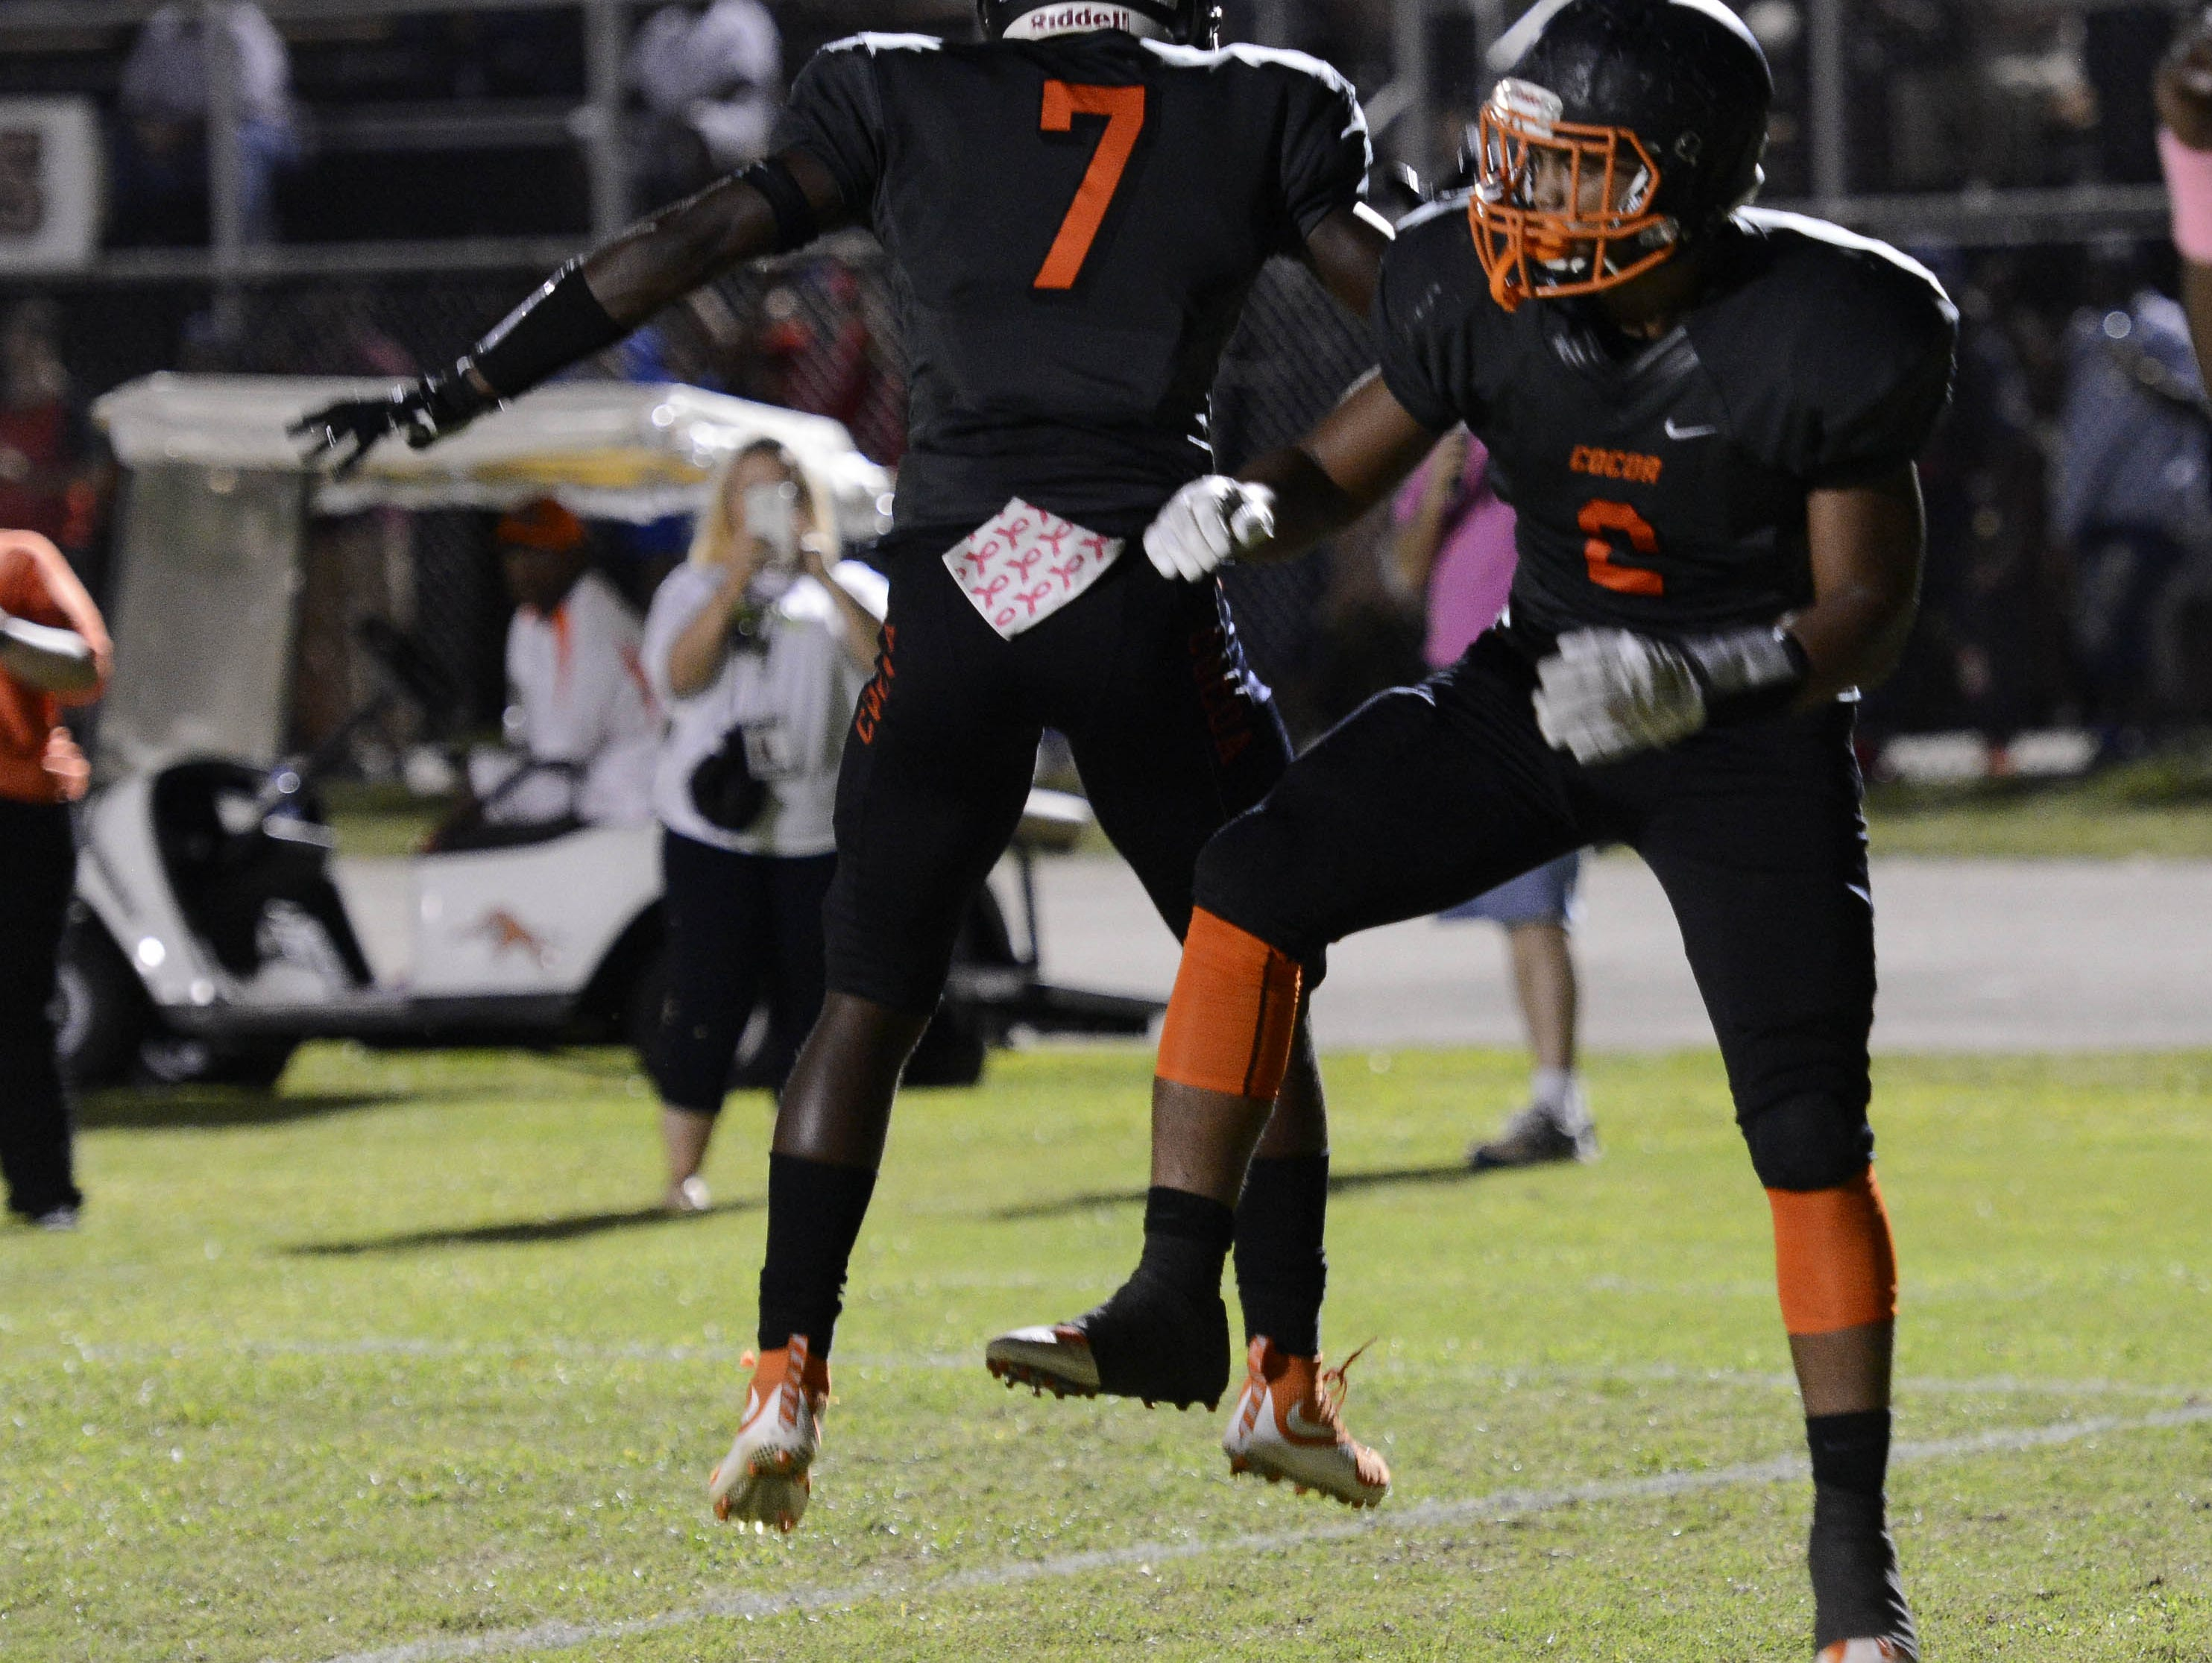 Timmy Pratt (2) and Juwan Armstrong of Cocoa celebrate a Pratt TD during Friday's game against Cocoa.